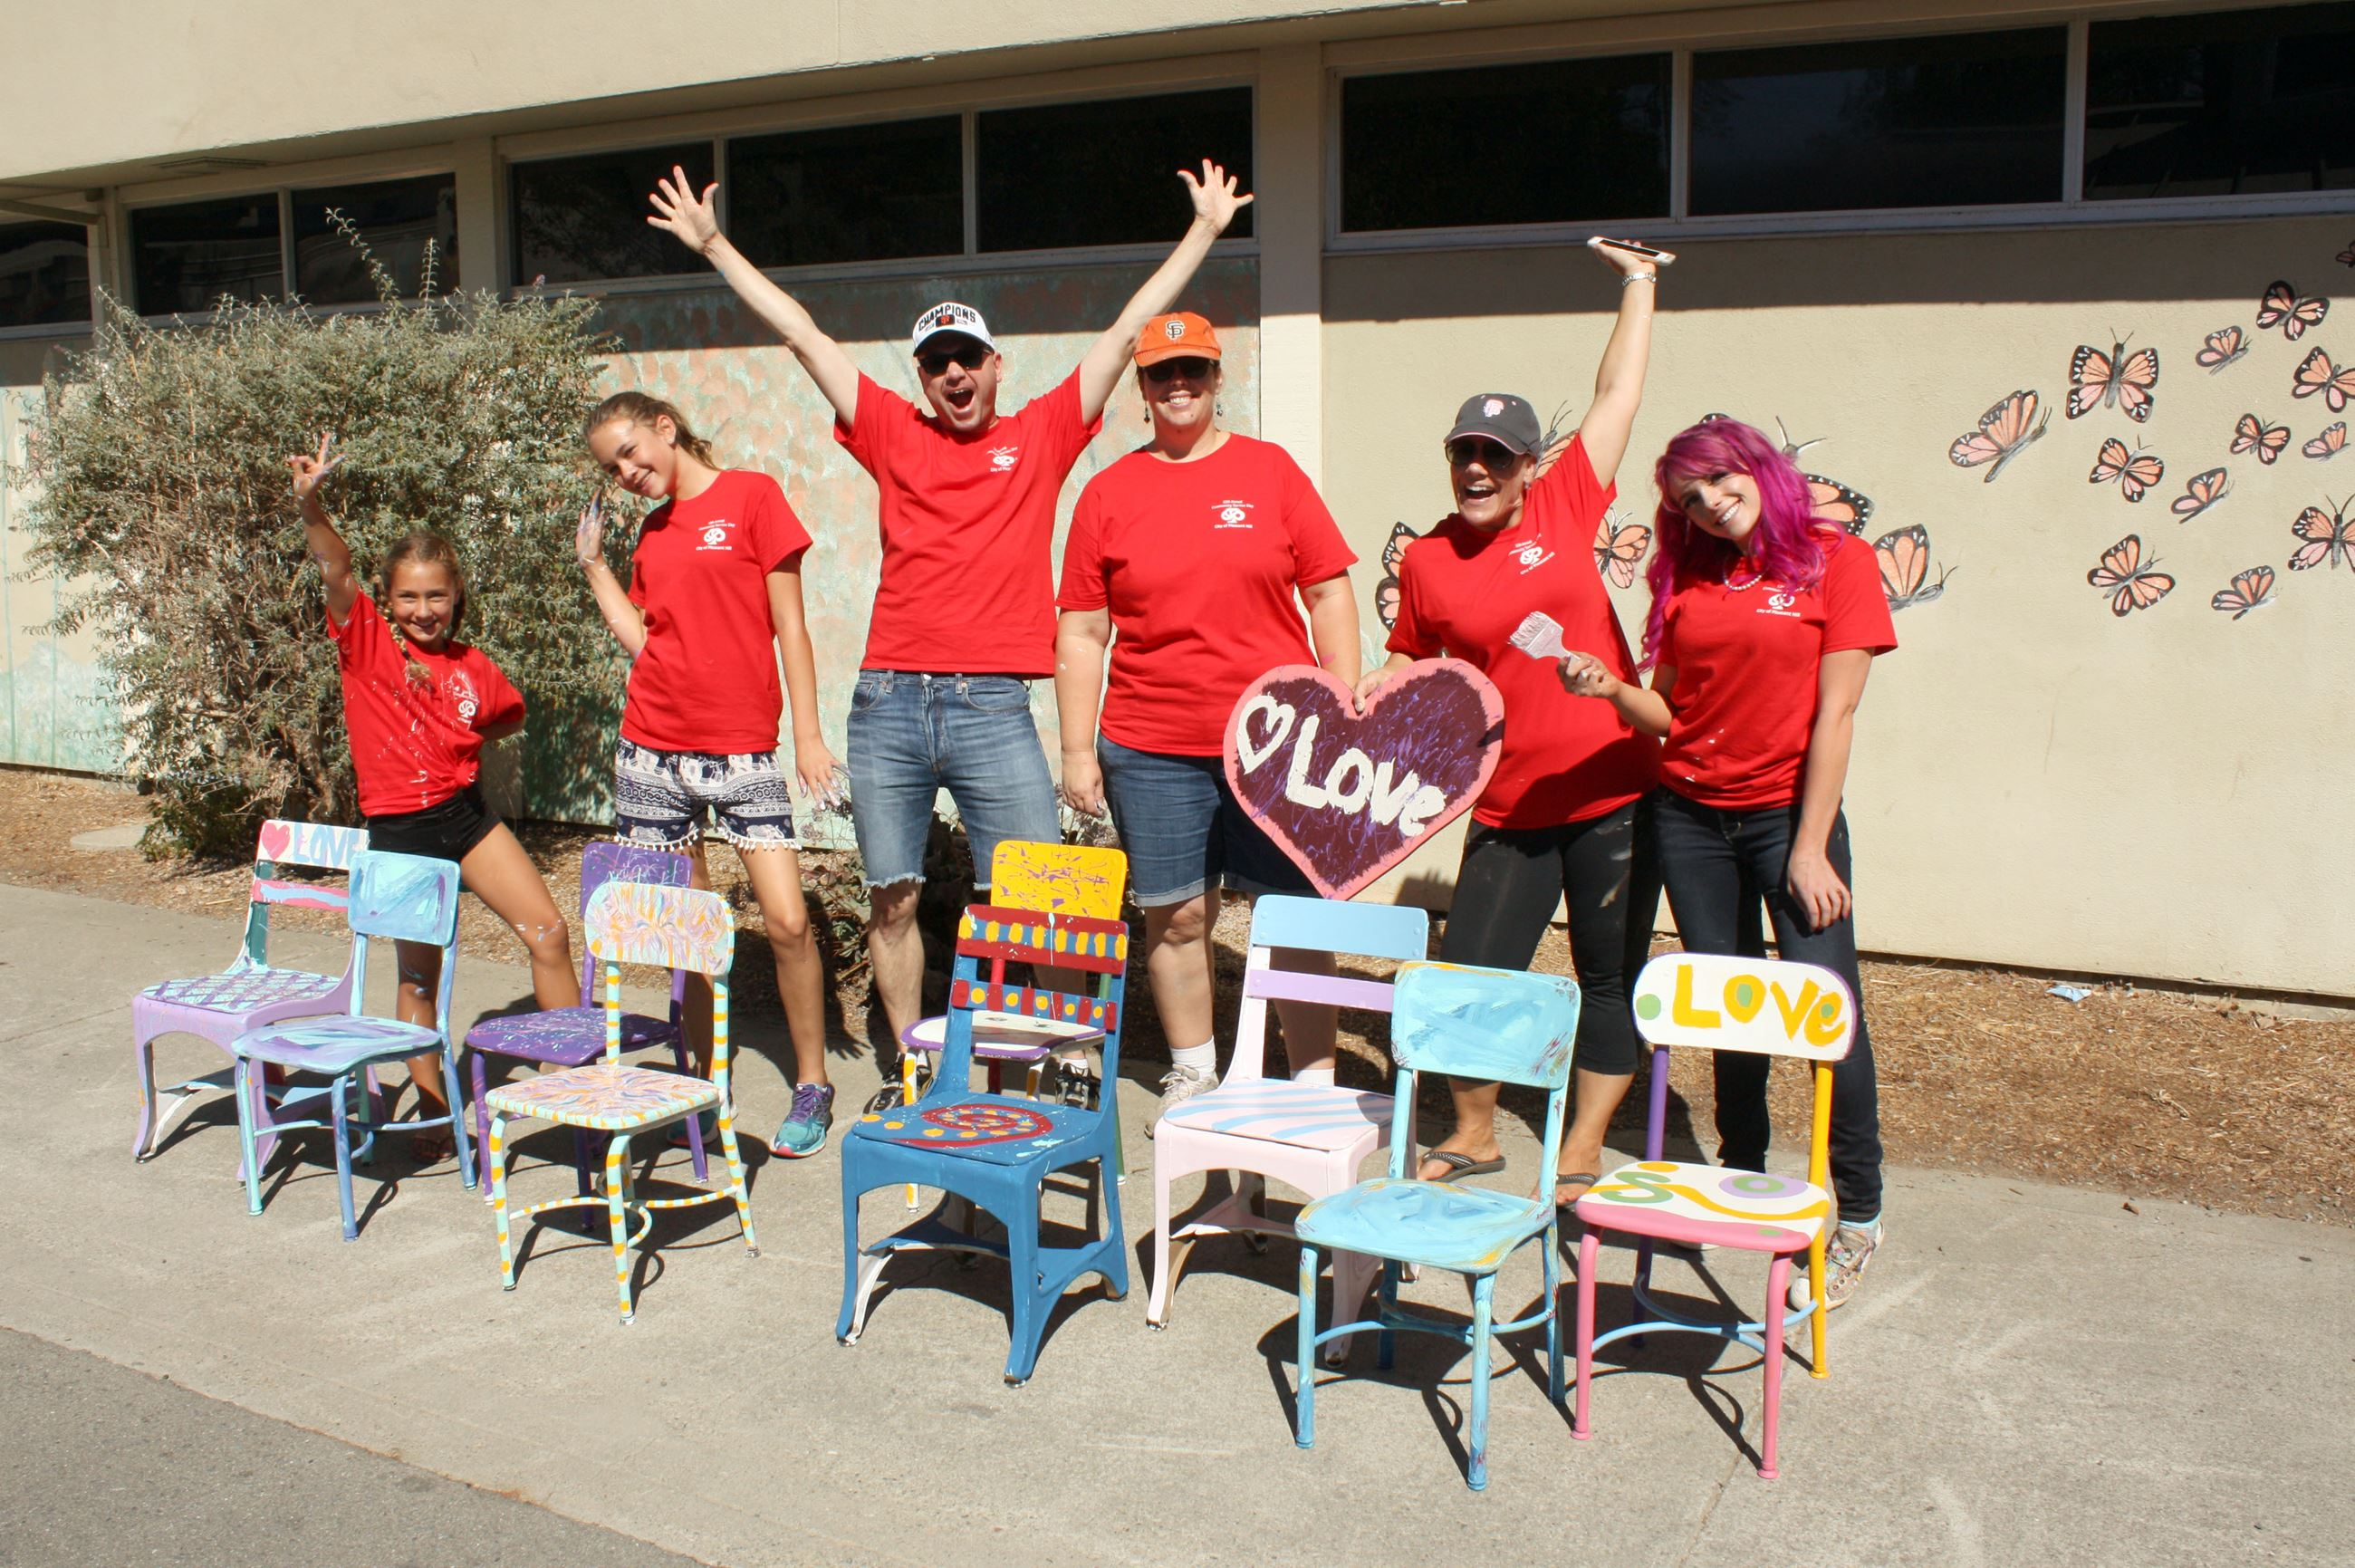 Painting chairs for KidStop at Gregory Gardens Elementary